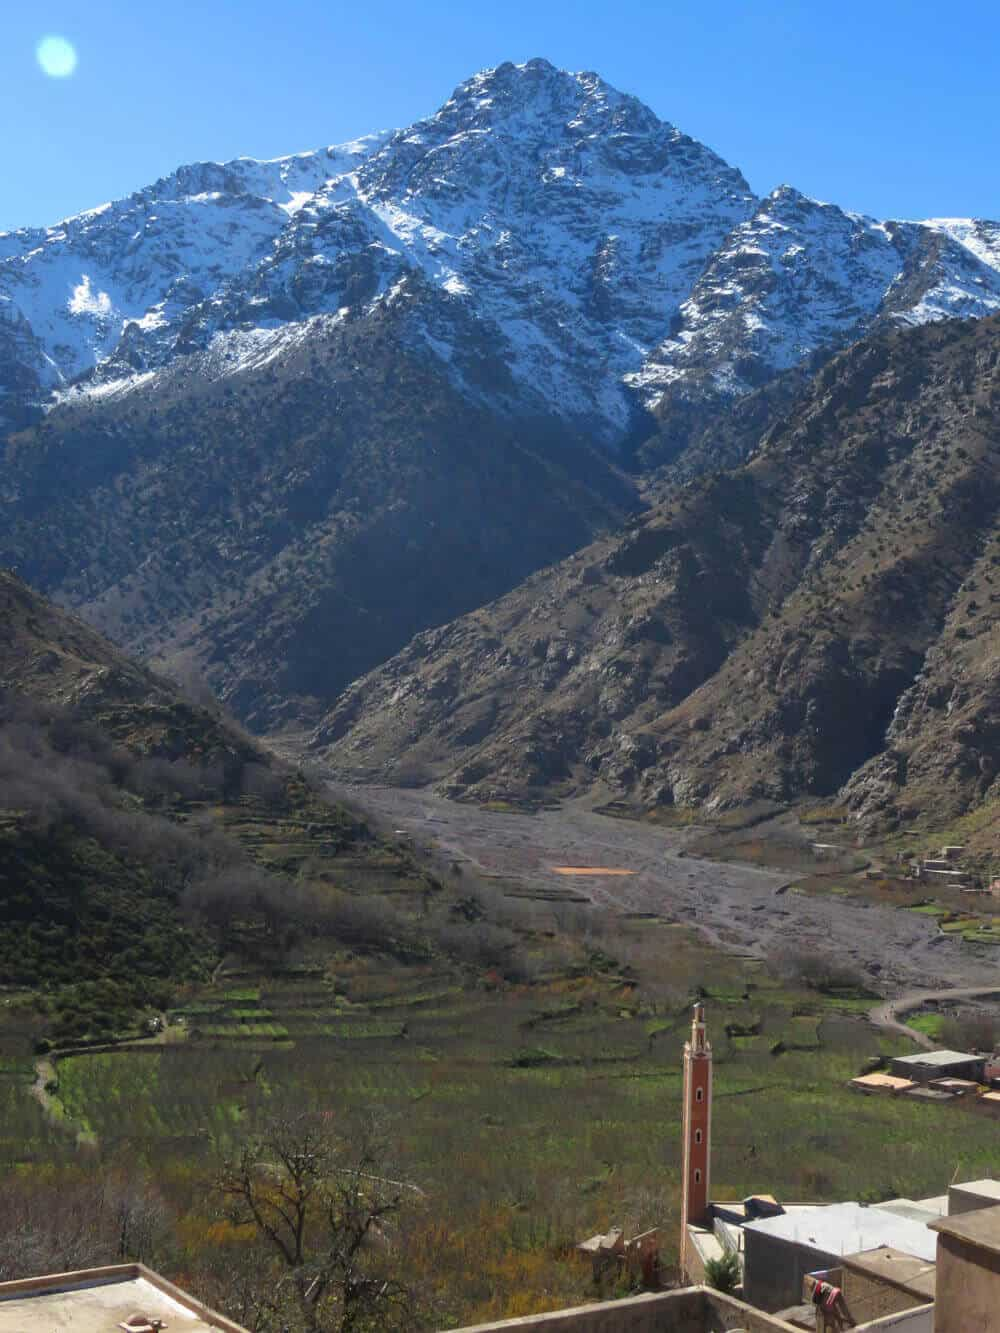 Views from Aroumd, Morocco. Toubkal National Park